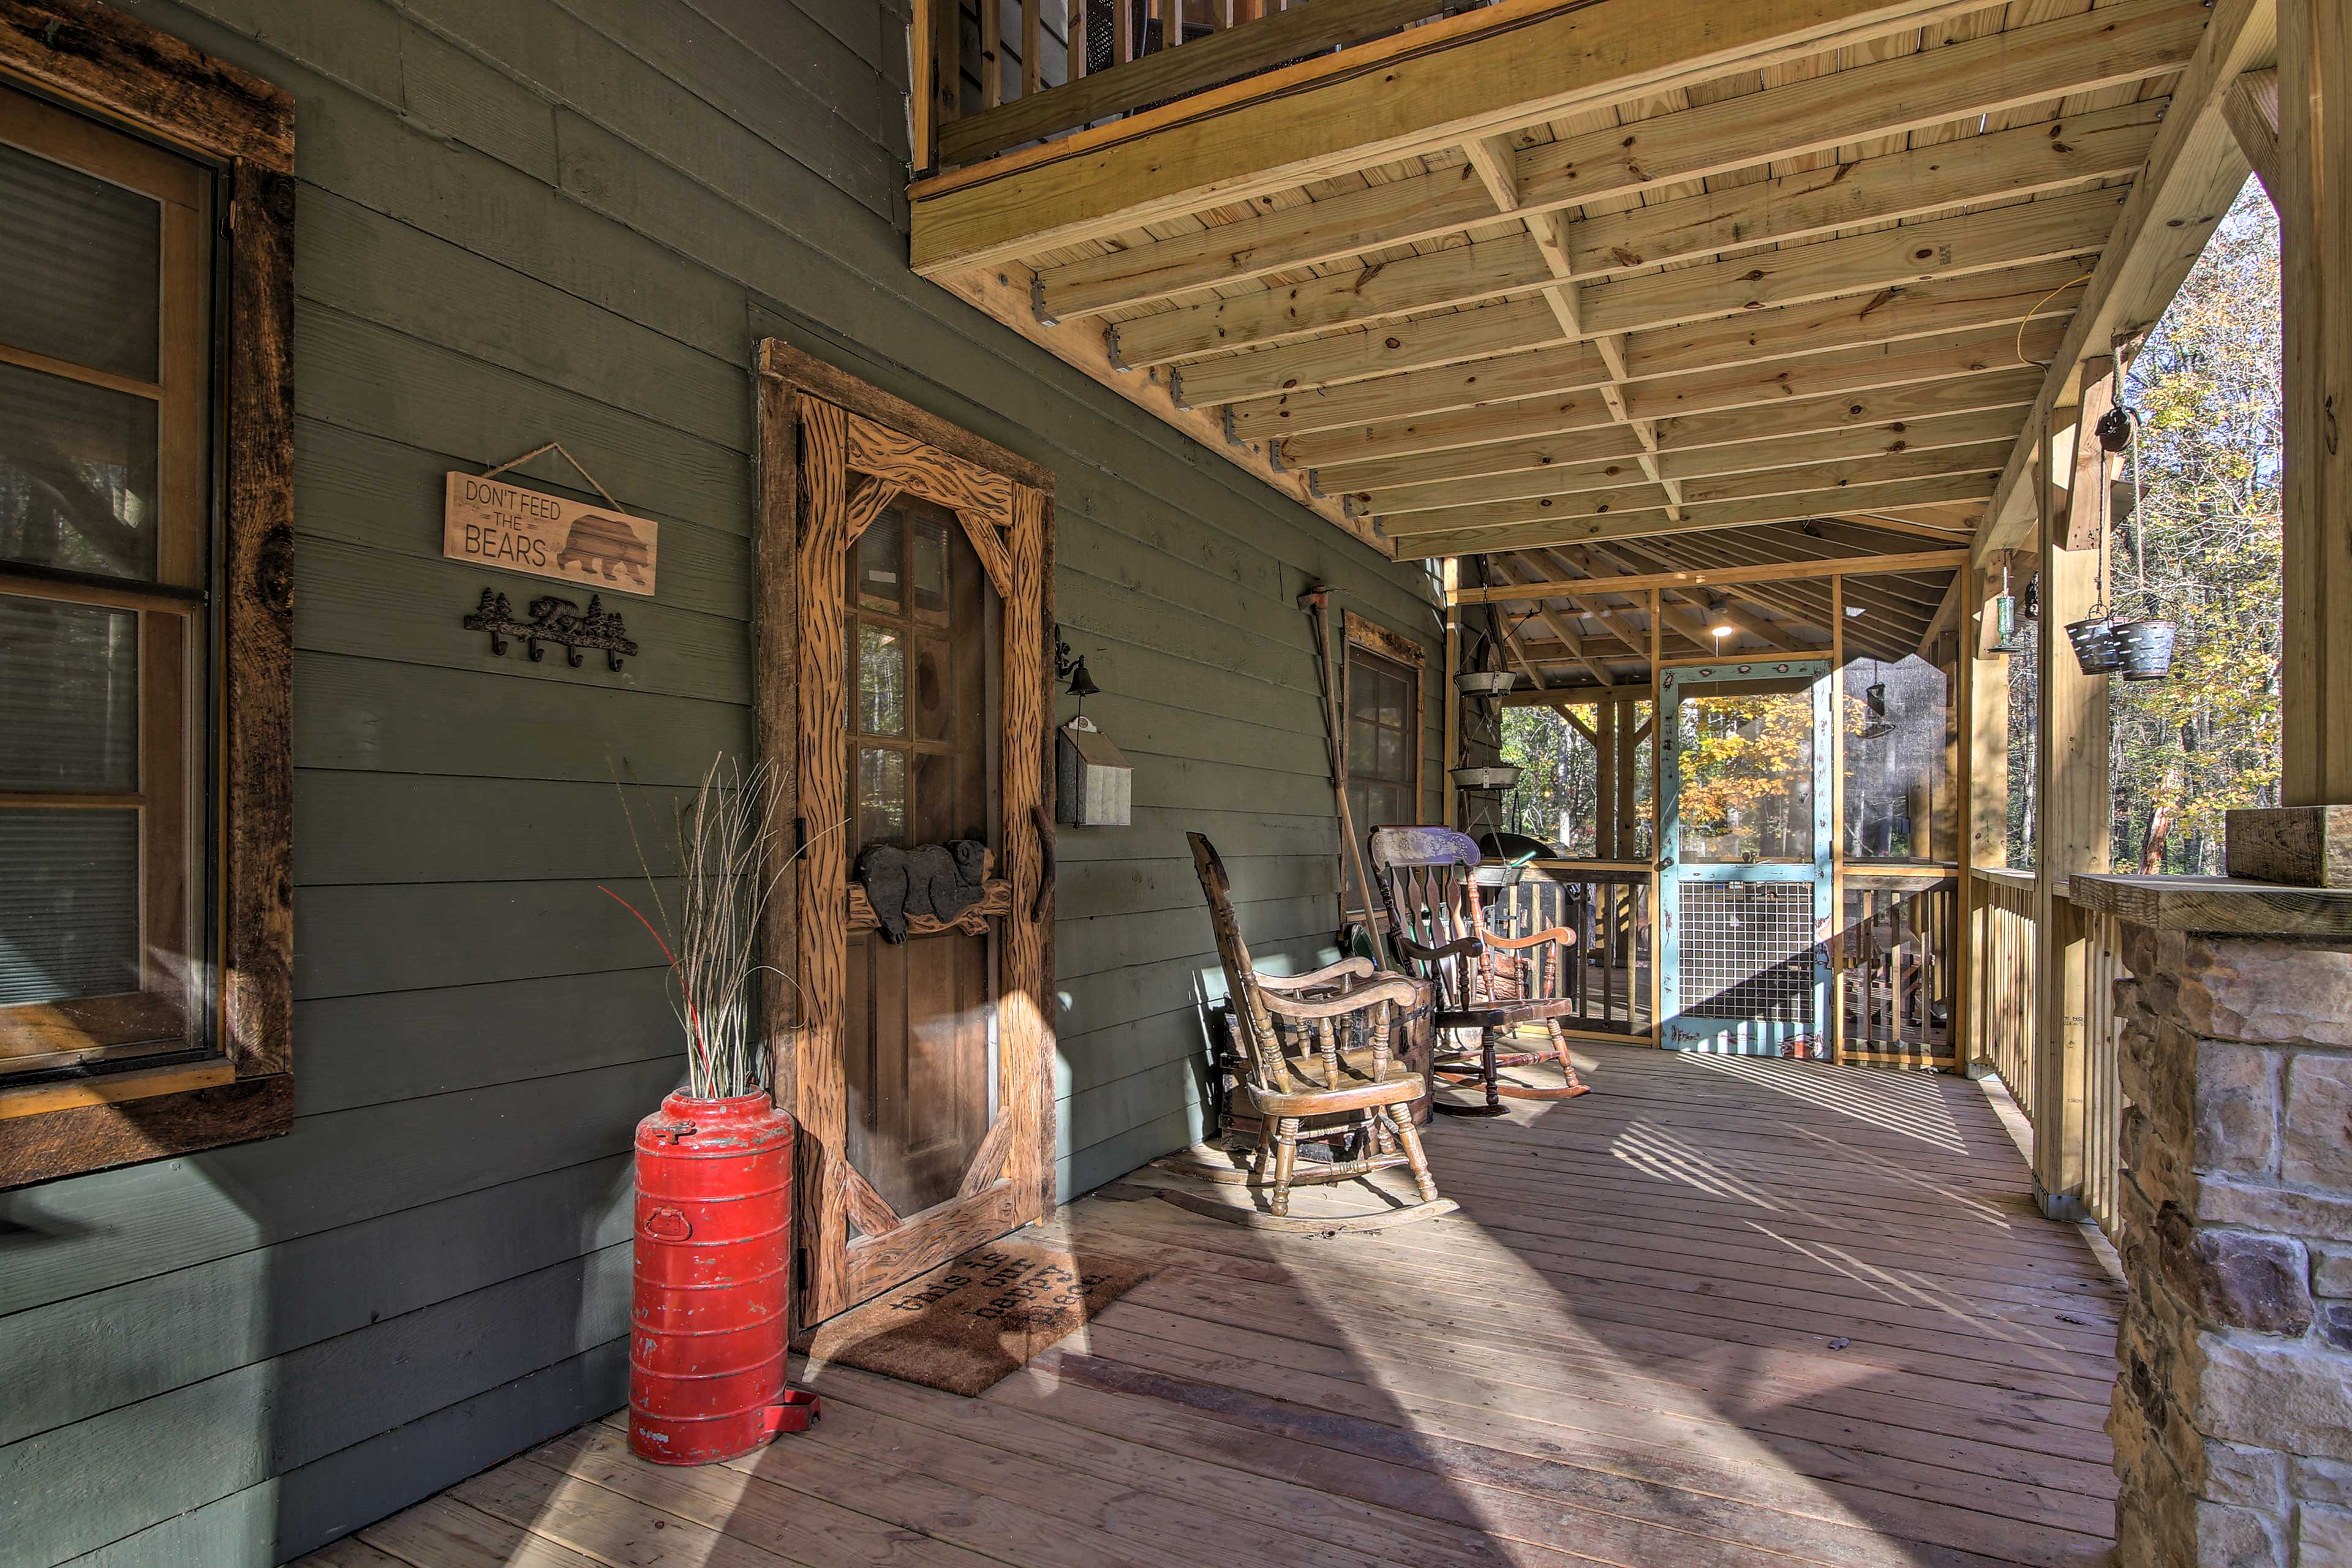 There is plenty of seating on porch, including rocking chairs.